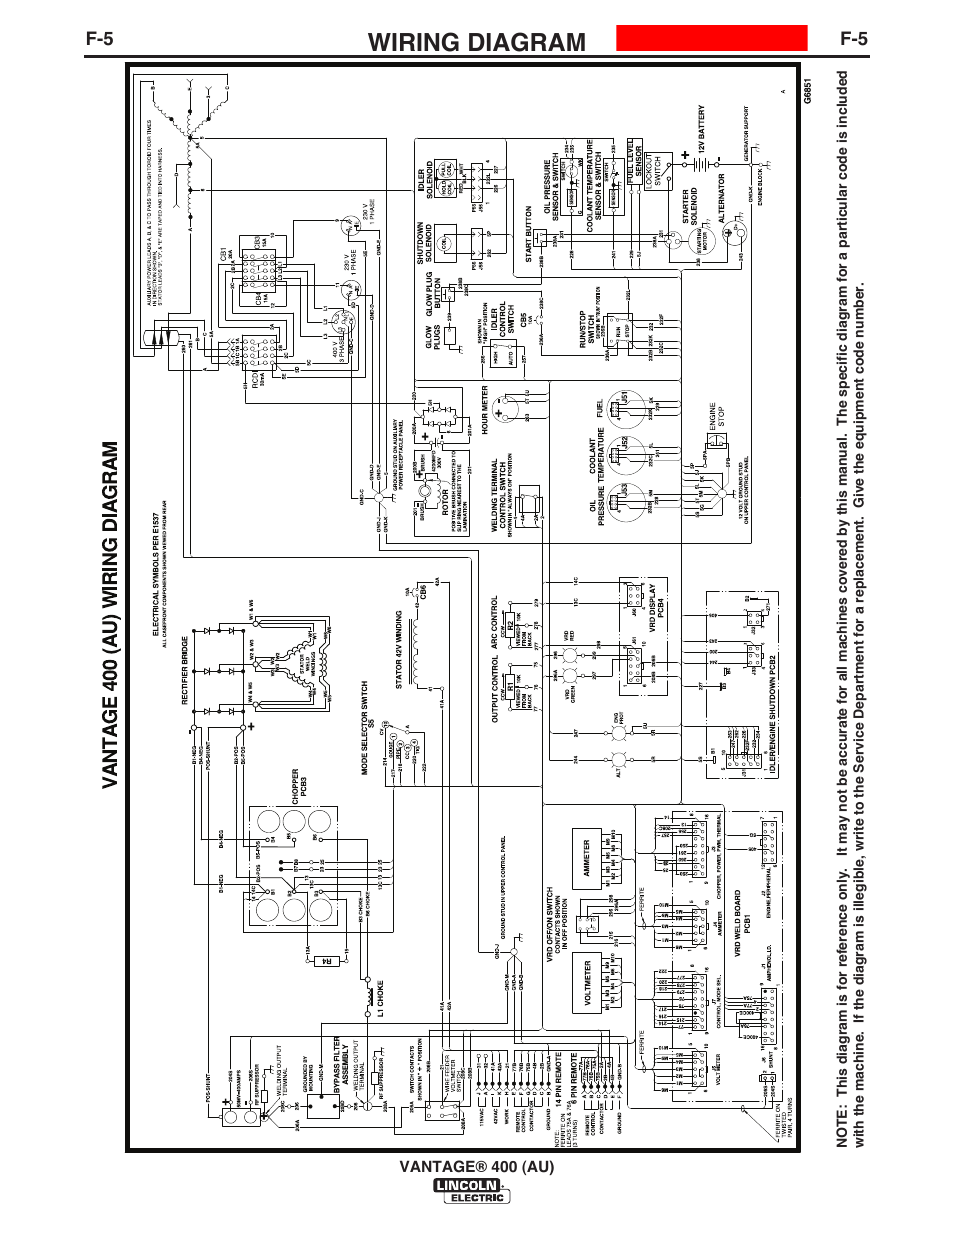 Lincoln Vantage 575 Wiring Diagram Library Electric Welder Free Picture Circuit Symbols U2022 Unicell